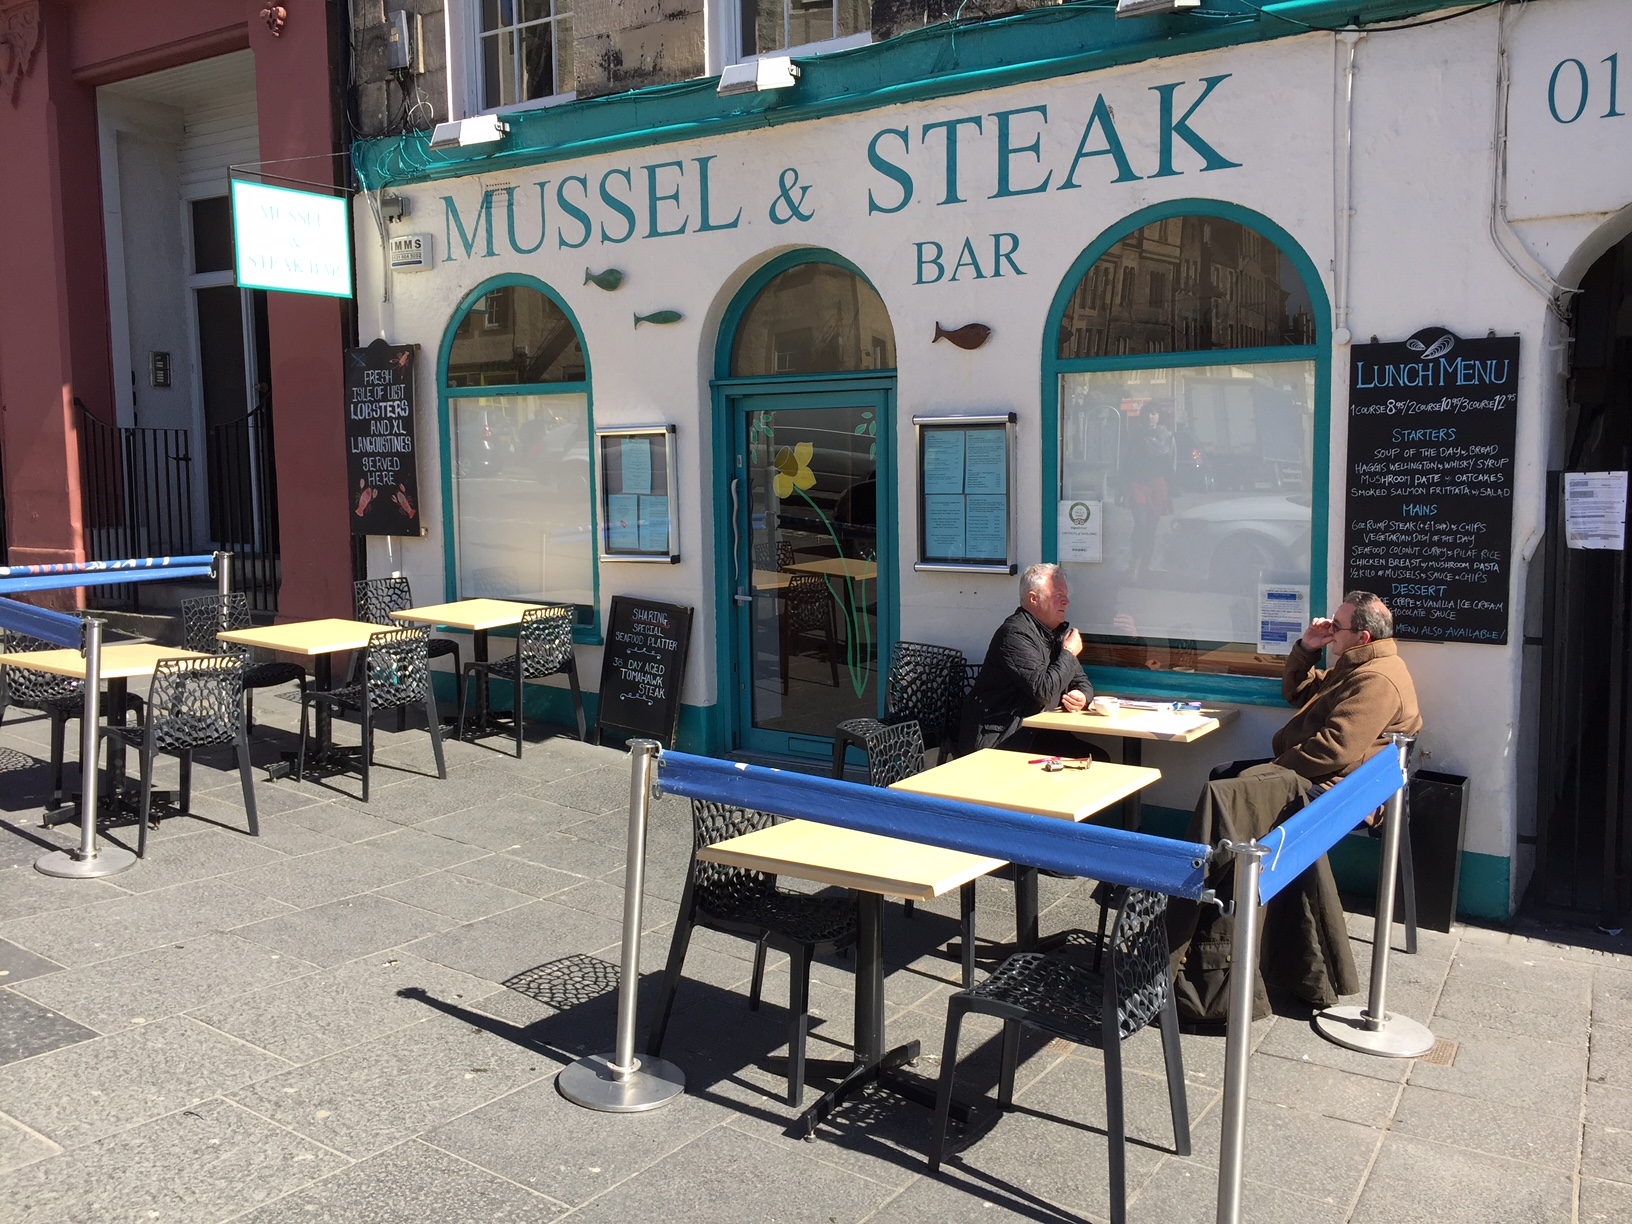 Steak and Mussel bar Edinburgh